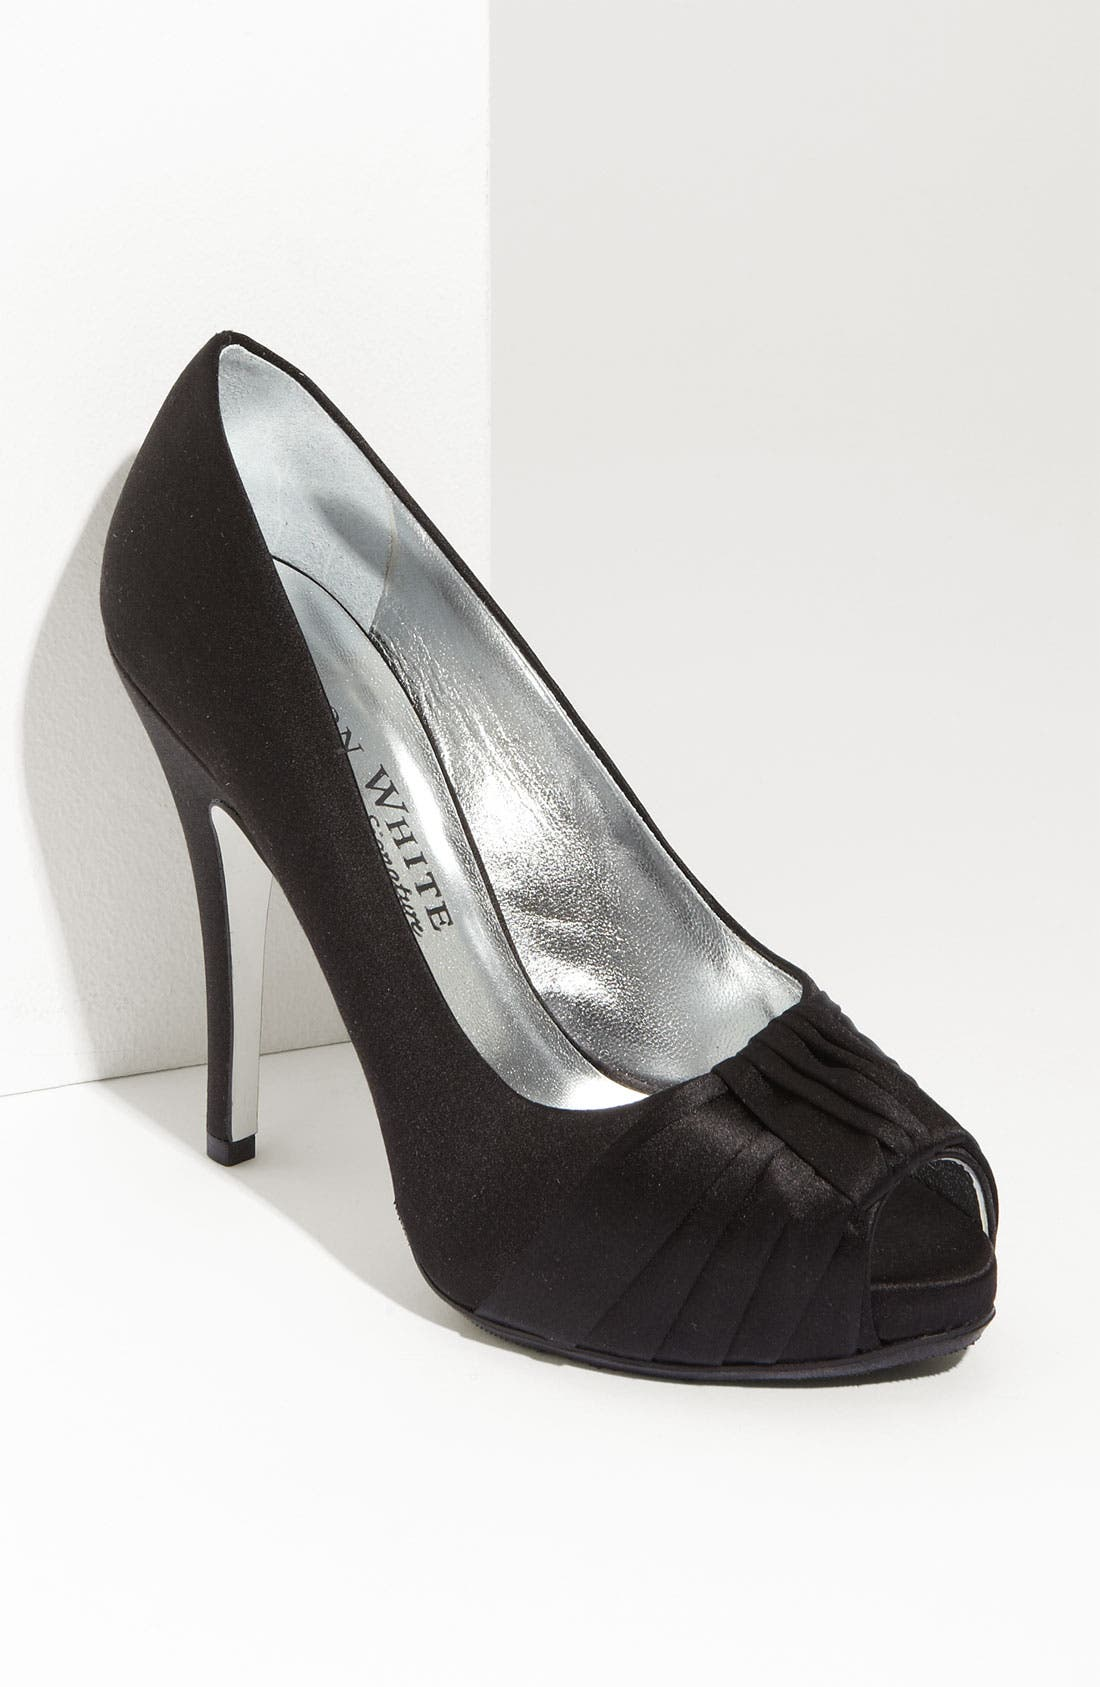 Alternate Image 1 Selected - Ron White 'Jessica' Pump